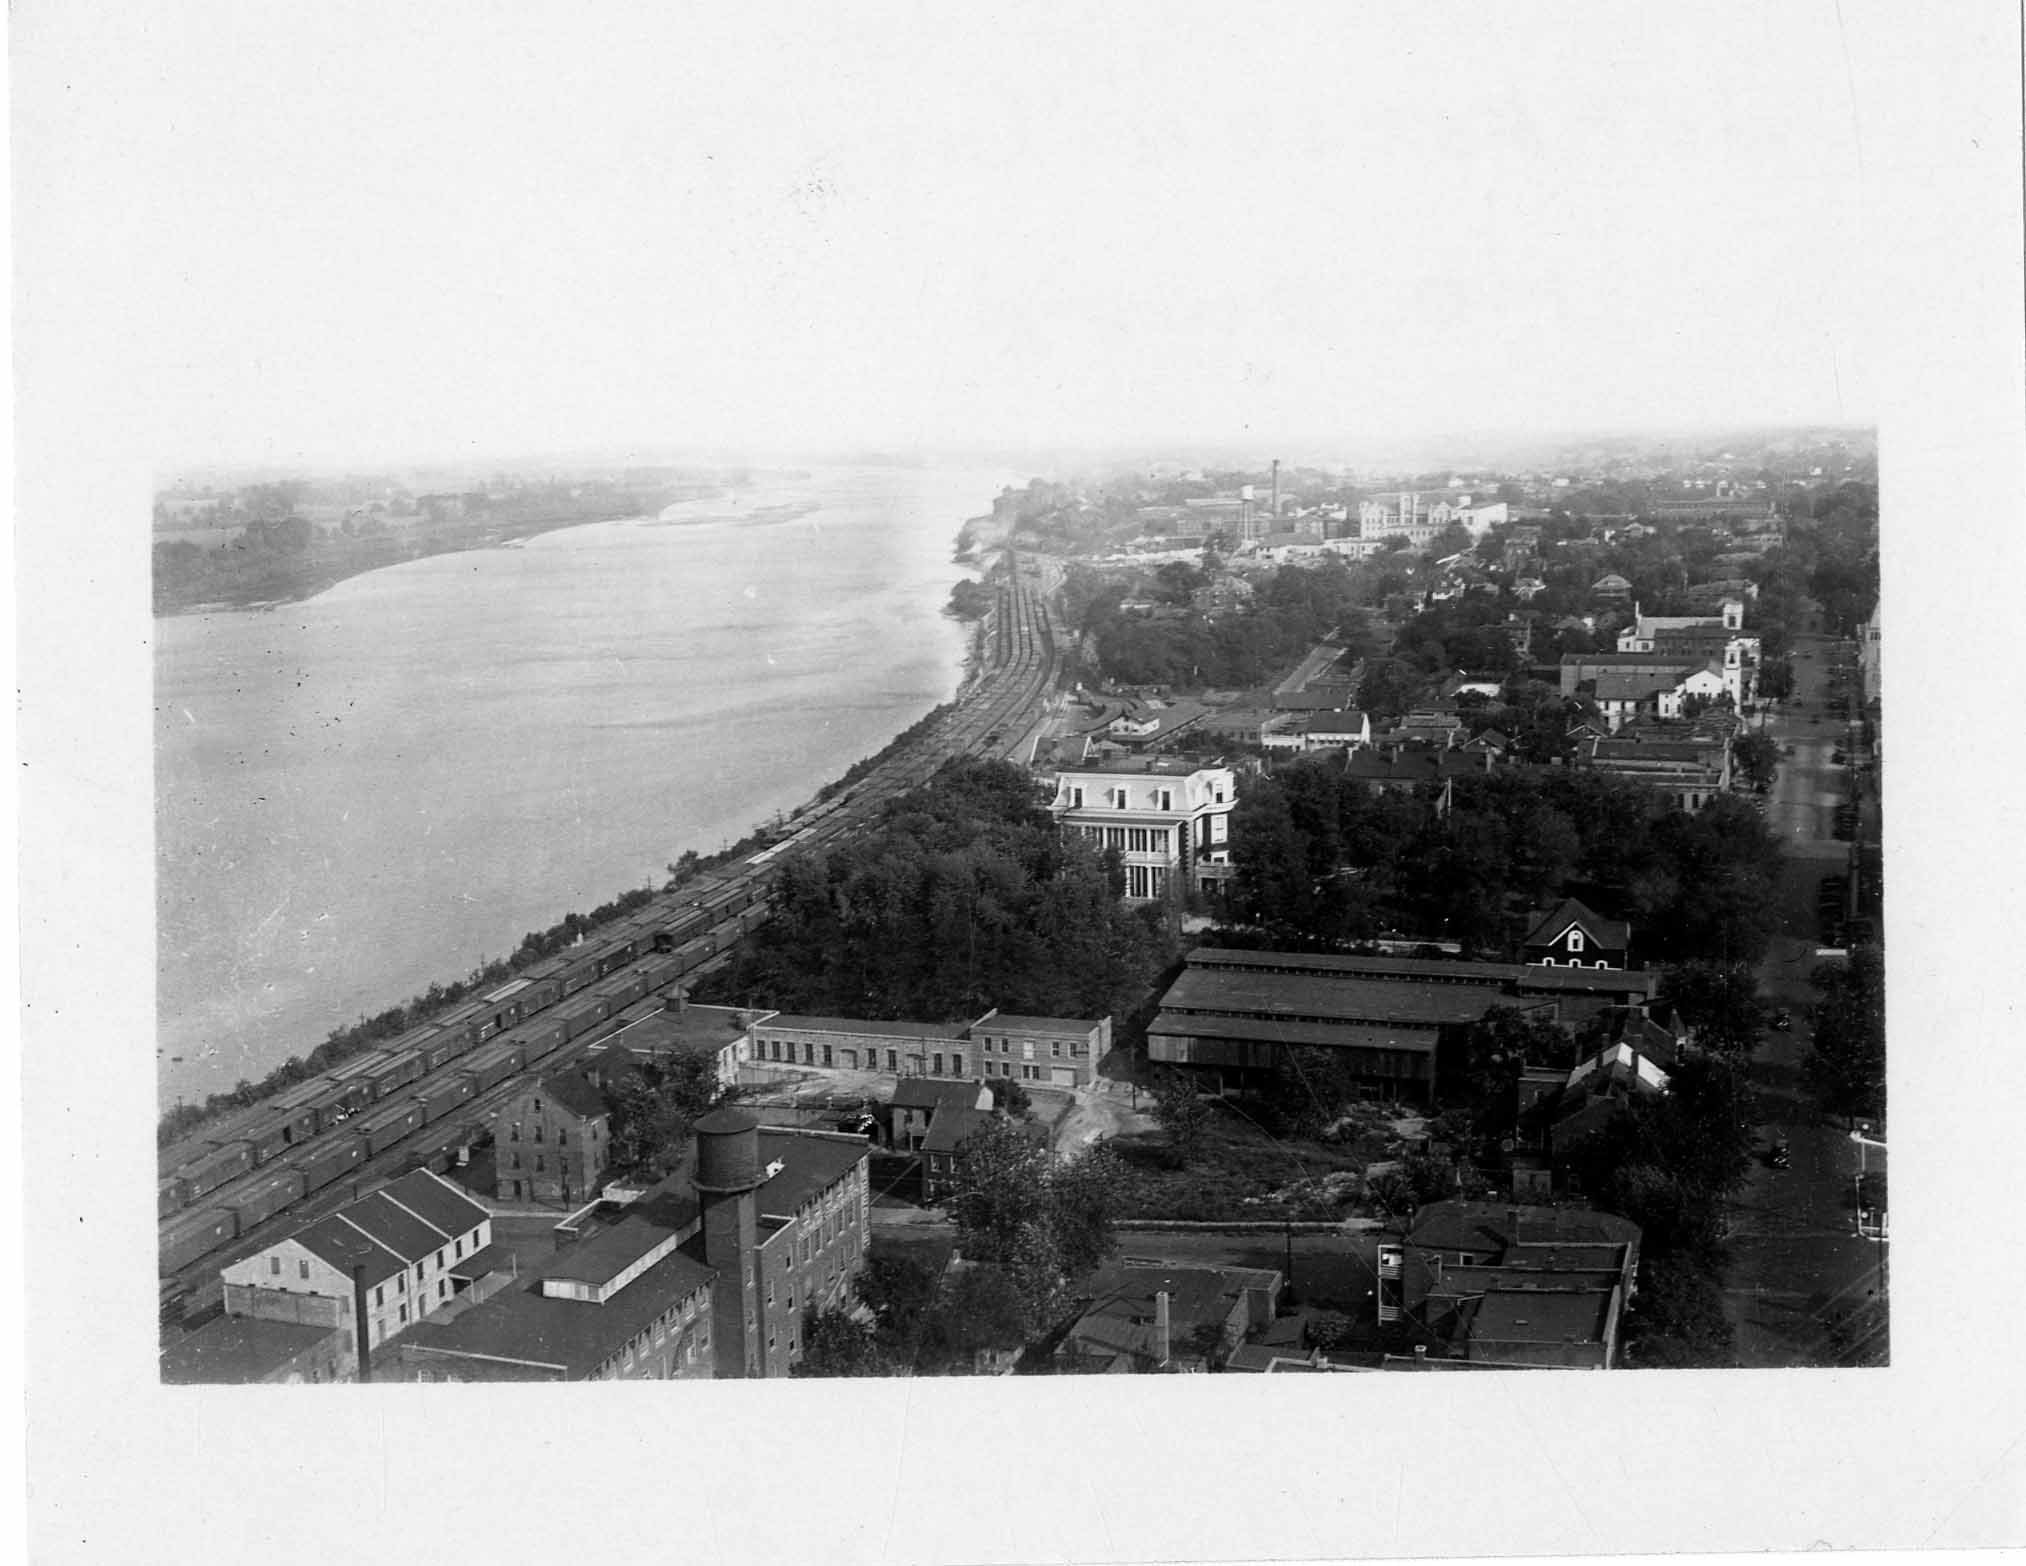 View from Capitol dome looking east showing the area between E. Capitol Ave. and the Missouri River in 1931.  The buildings of Jefferson Landing State Historic Site are visible at the lower left of the image.  Photo courtesy Missouri State Museum.